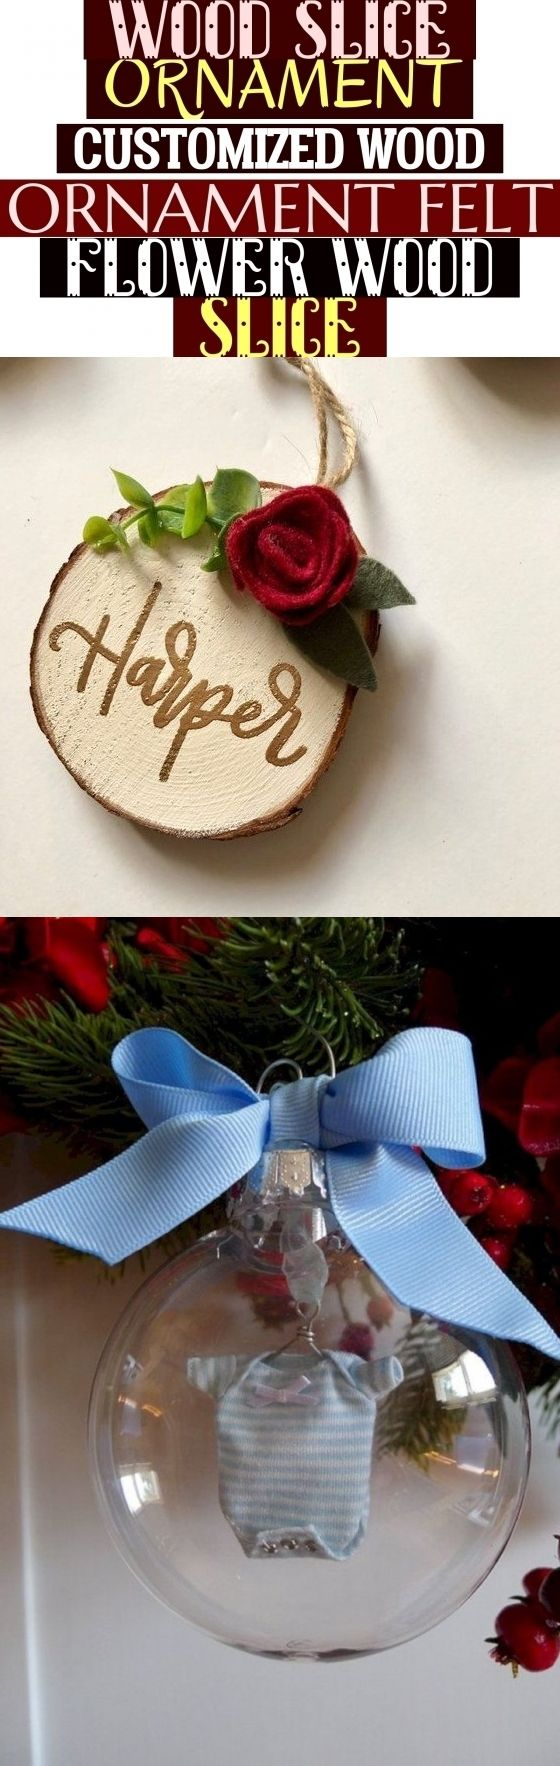 Wood Slice Ornament Customized Wood Ornament Felt Flower Wood Slice , #baby holz...